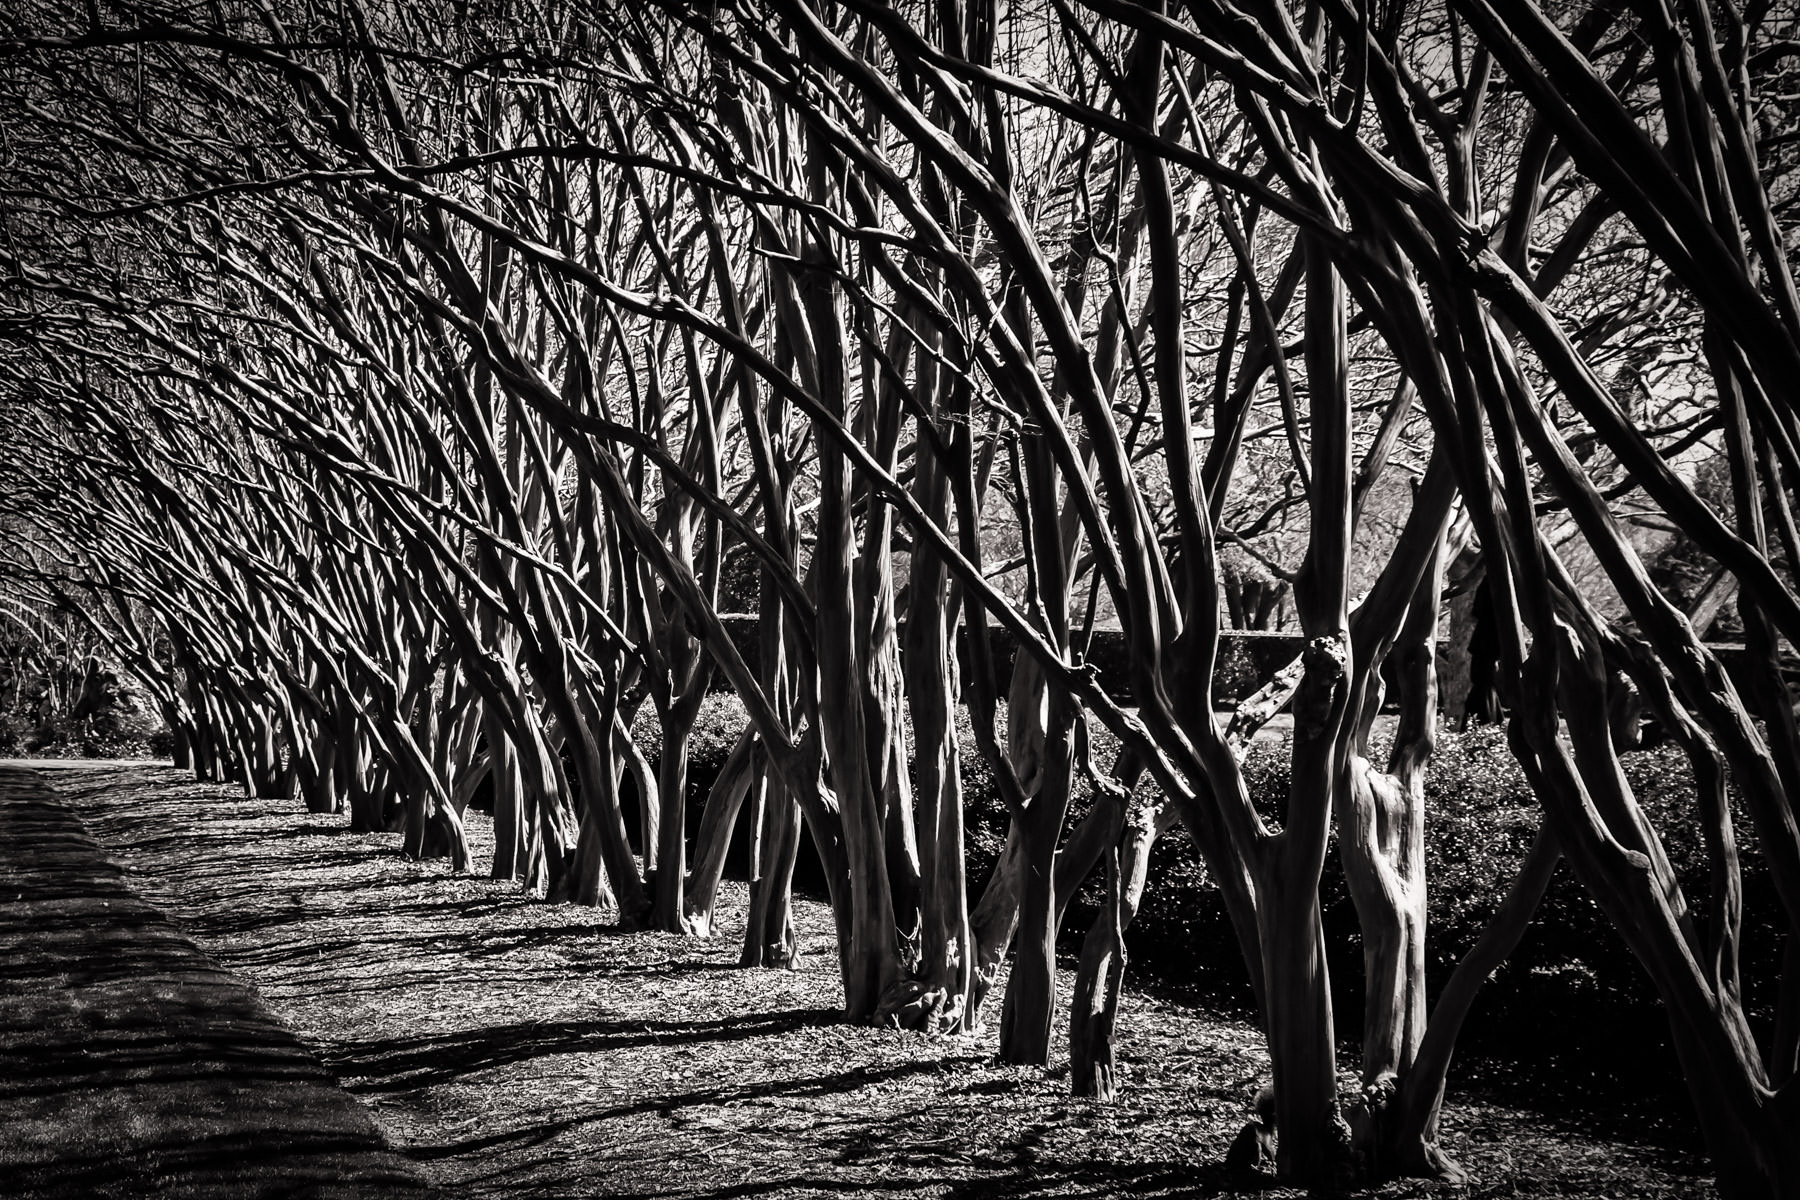 A row of trees at the Dallas Arboretum.